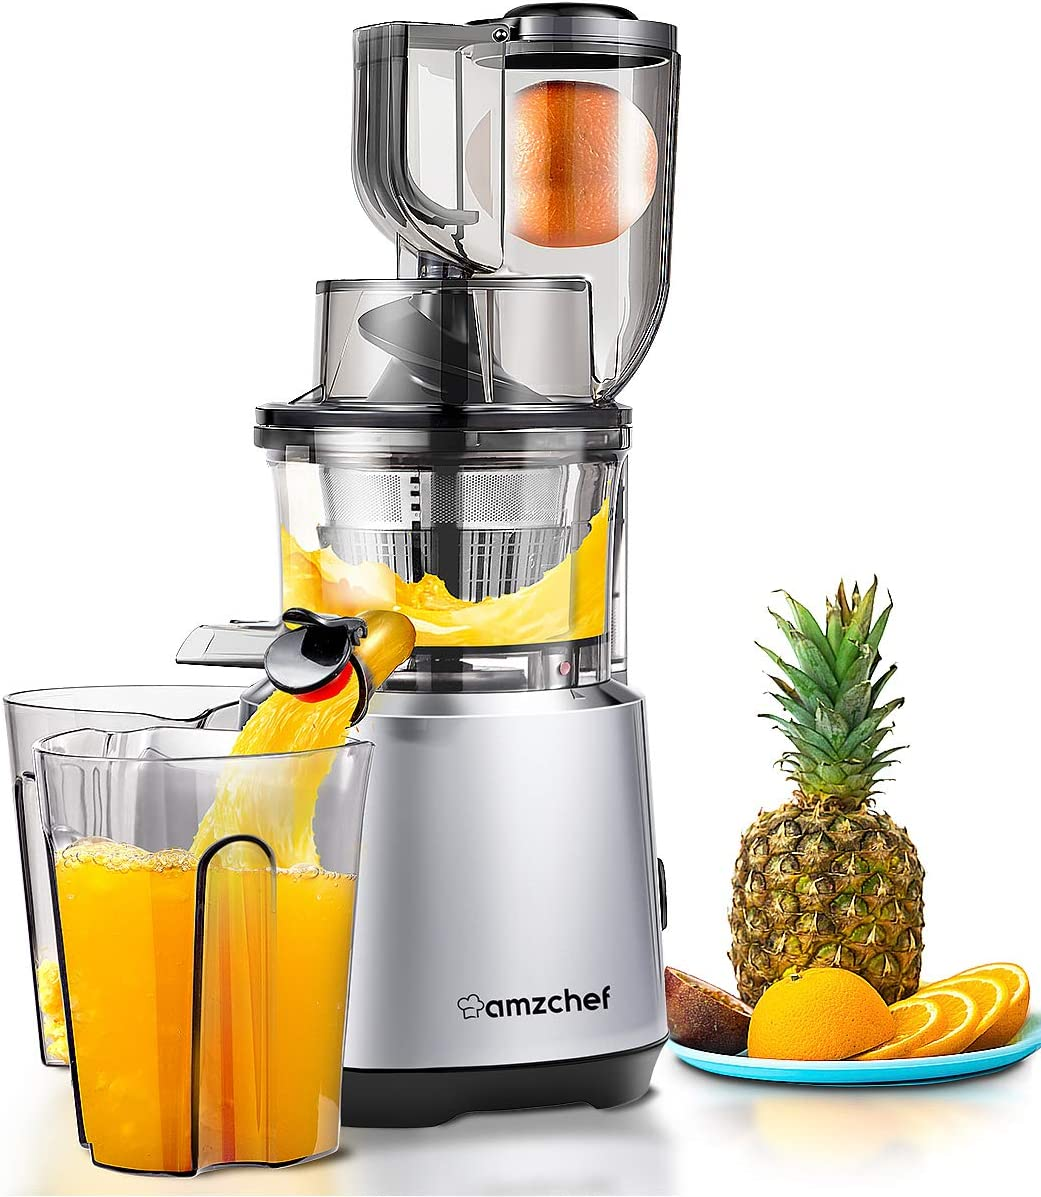 Best AMZCHEF Juicers 2021 Review